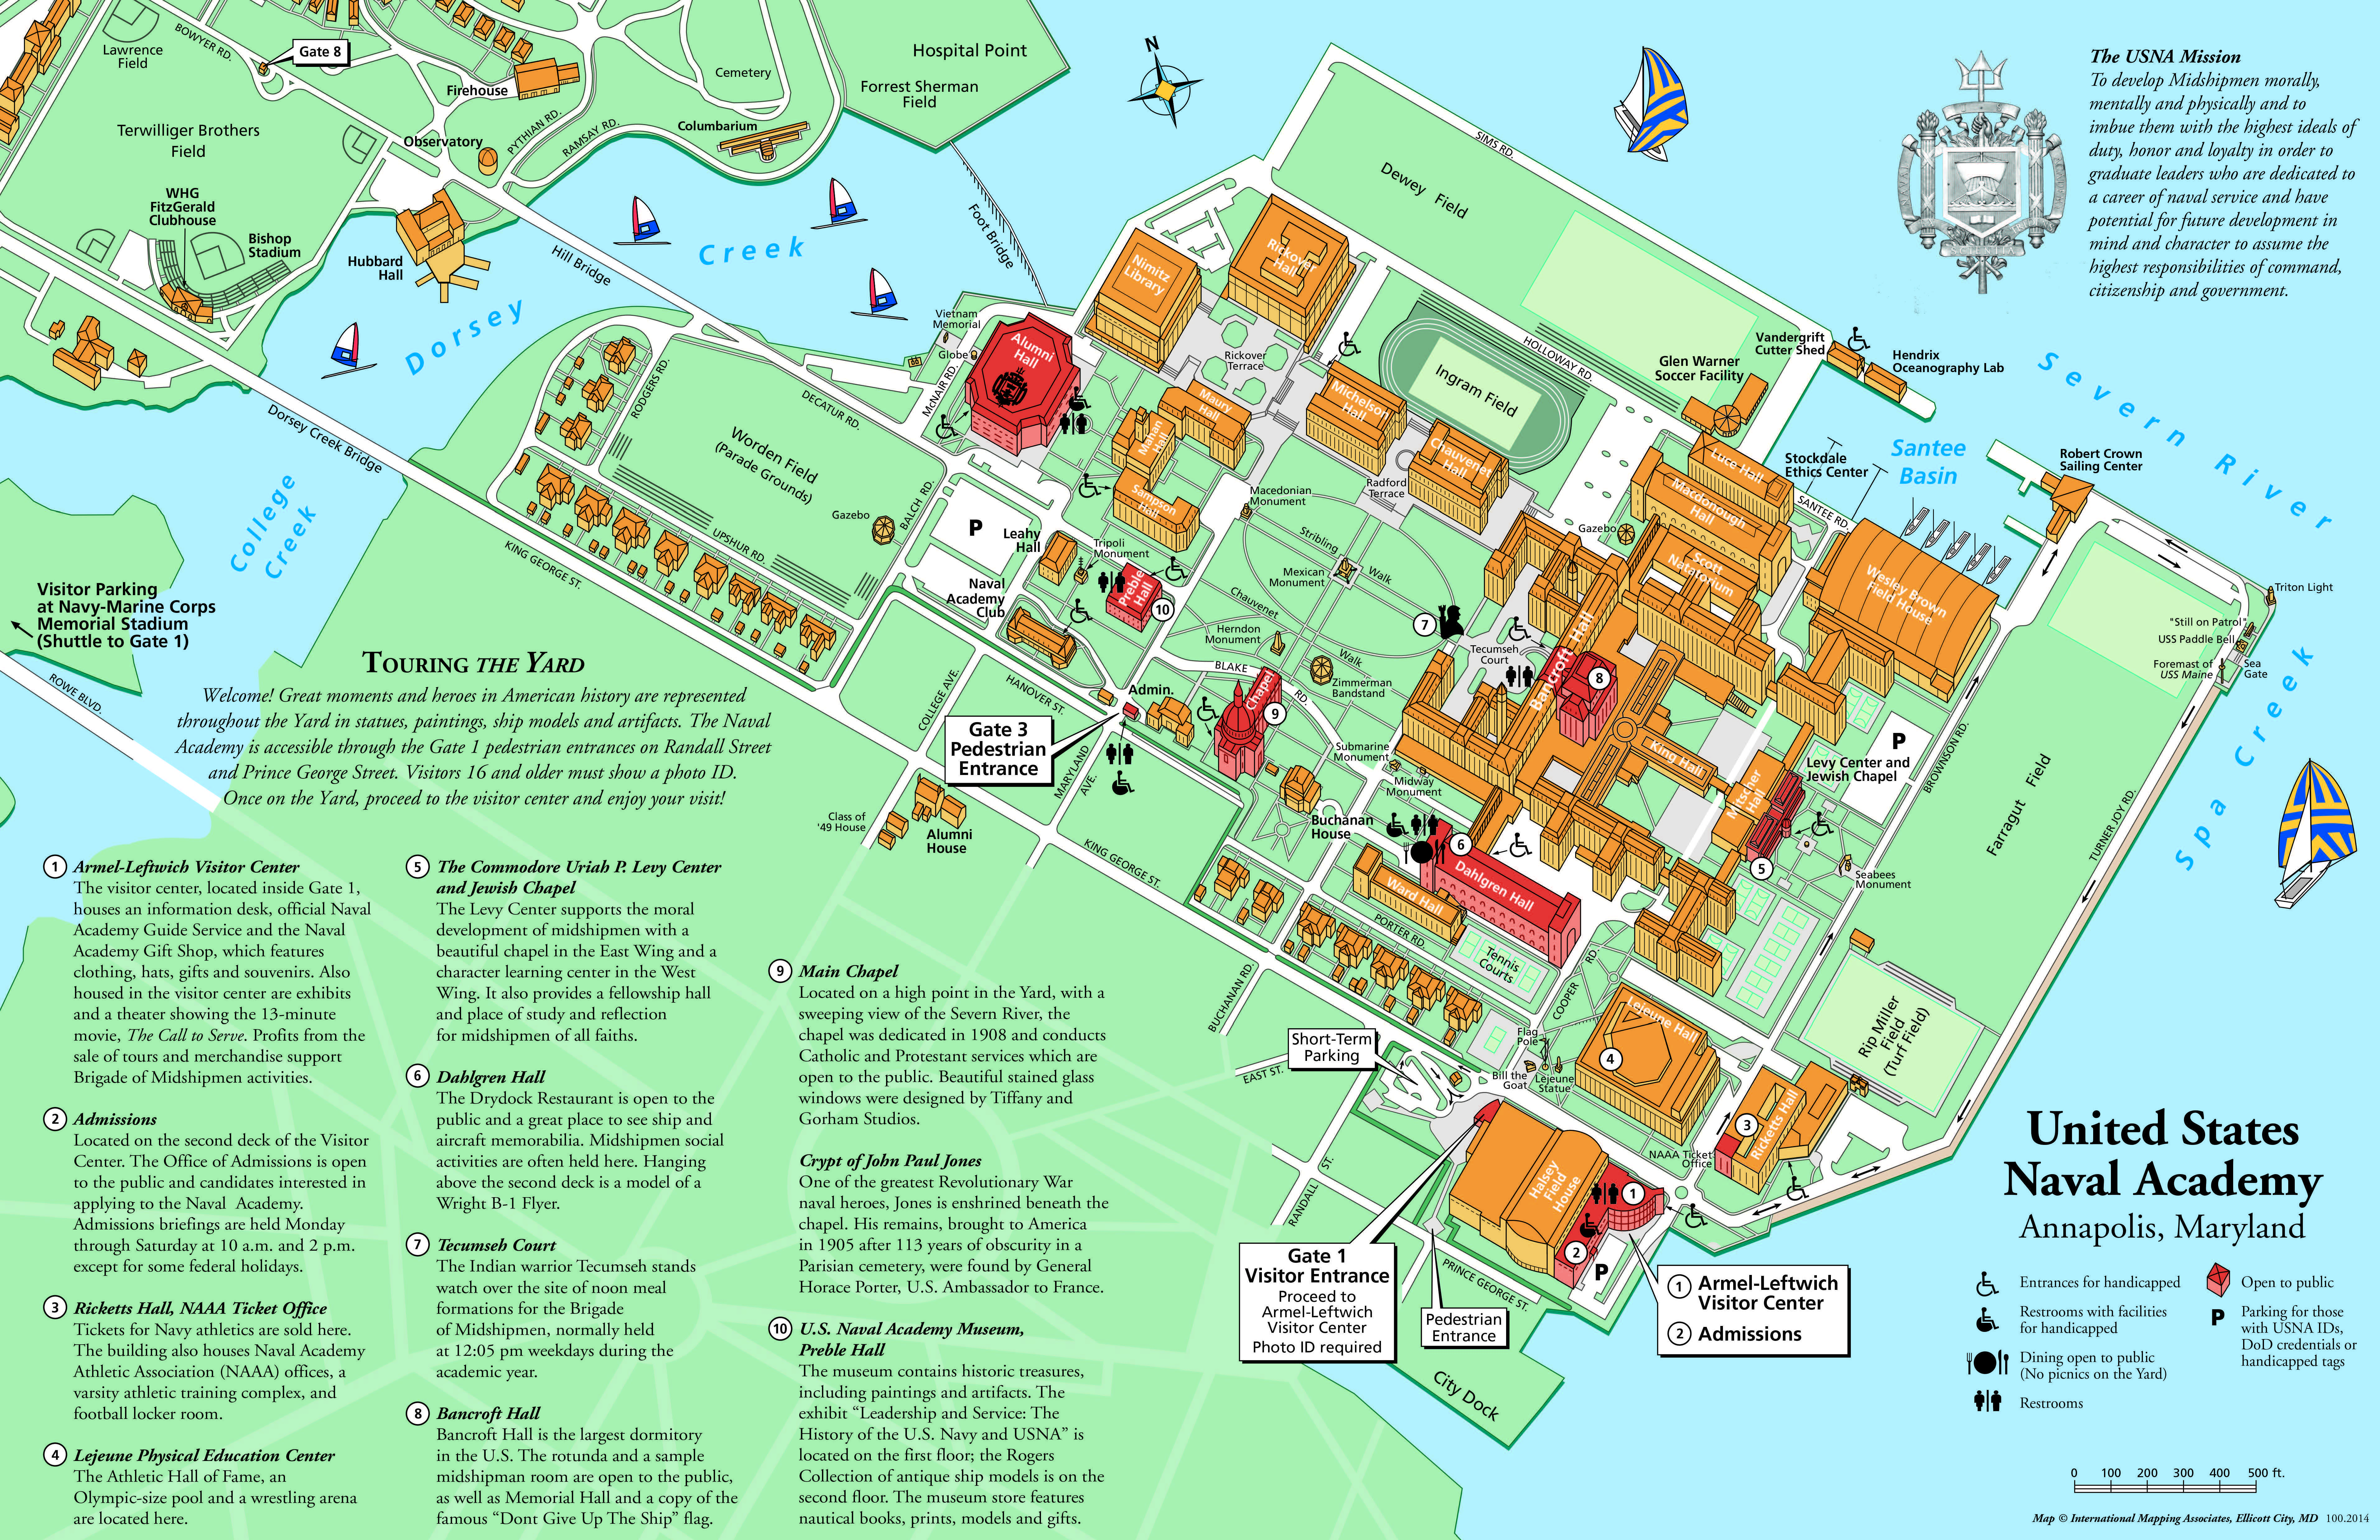 us naval academy campus map Naval Academy Map Campus us naval academy campus map